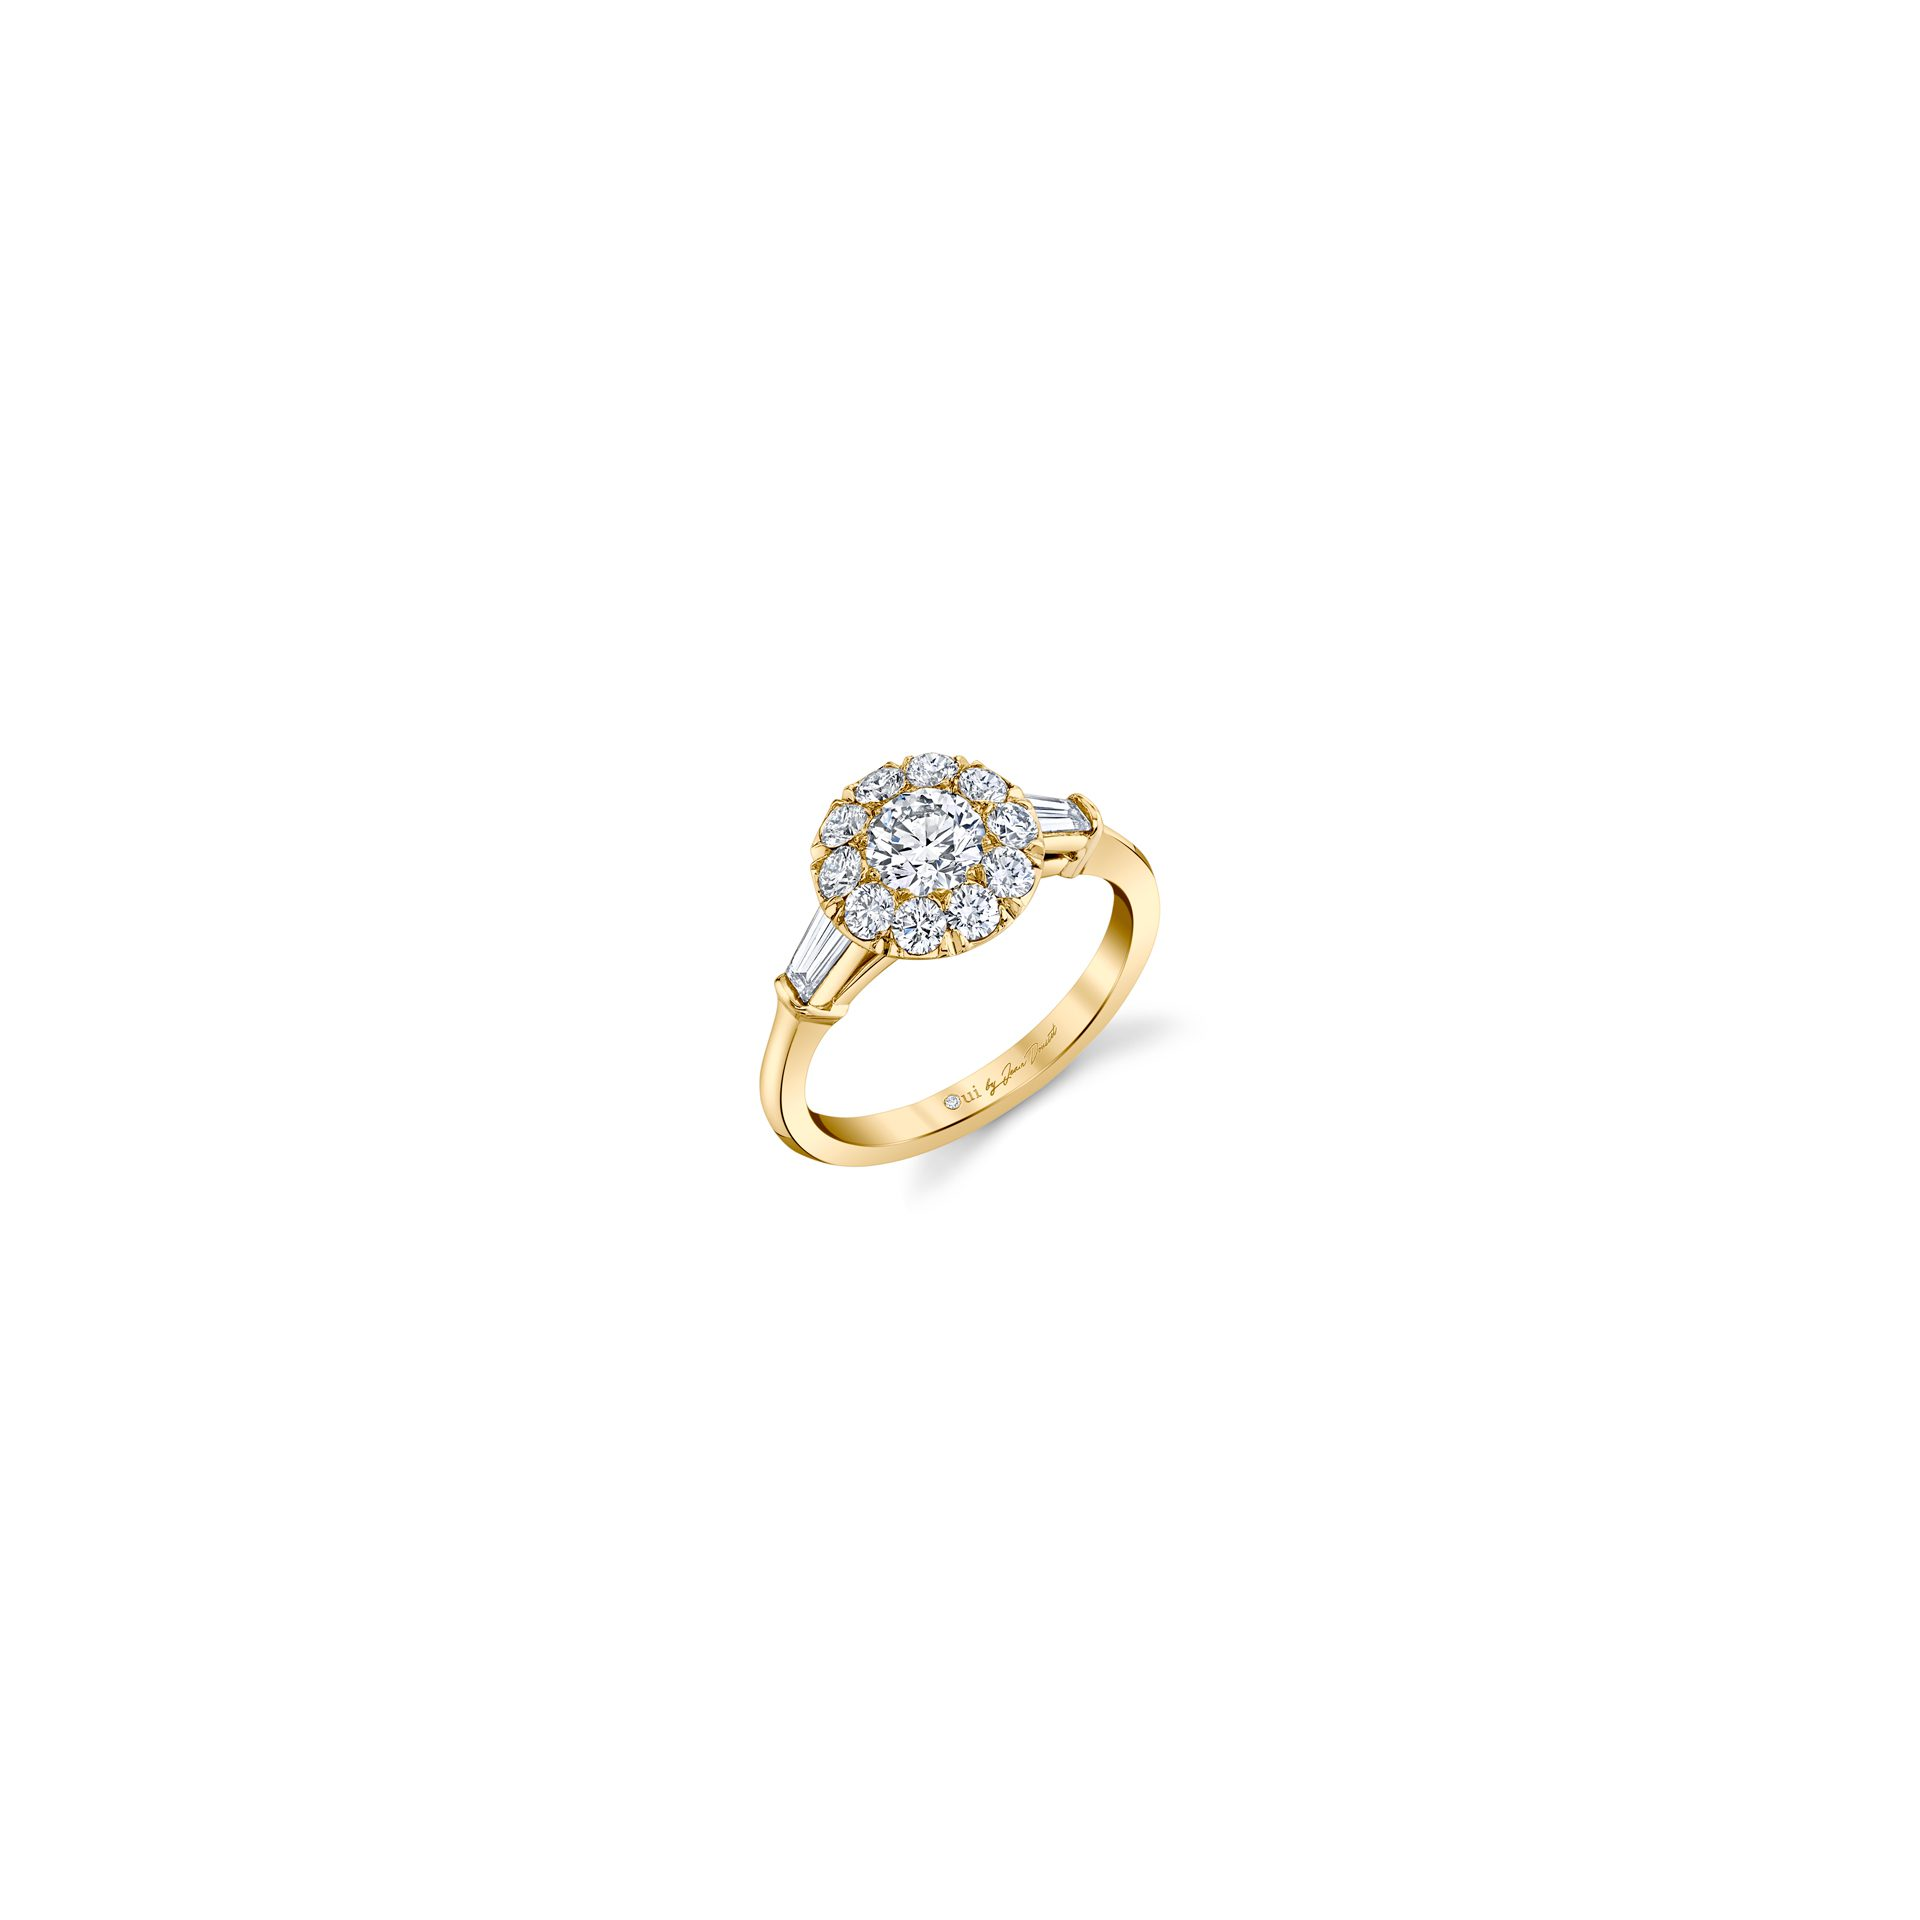 Madeline Round Brilliant Seamless Solitaire™ Three Stone Engagement Ring with tapered baguette diamond side stones in 18k Yellow Gold Front View by Oui by Jean Dousset